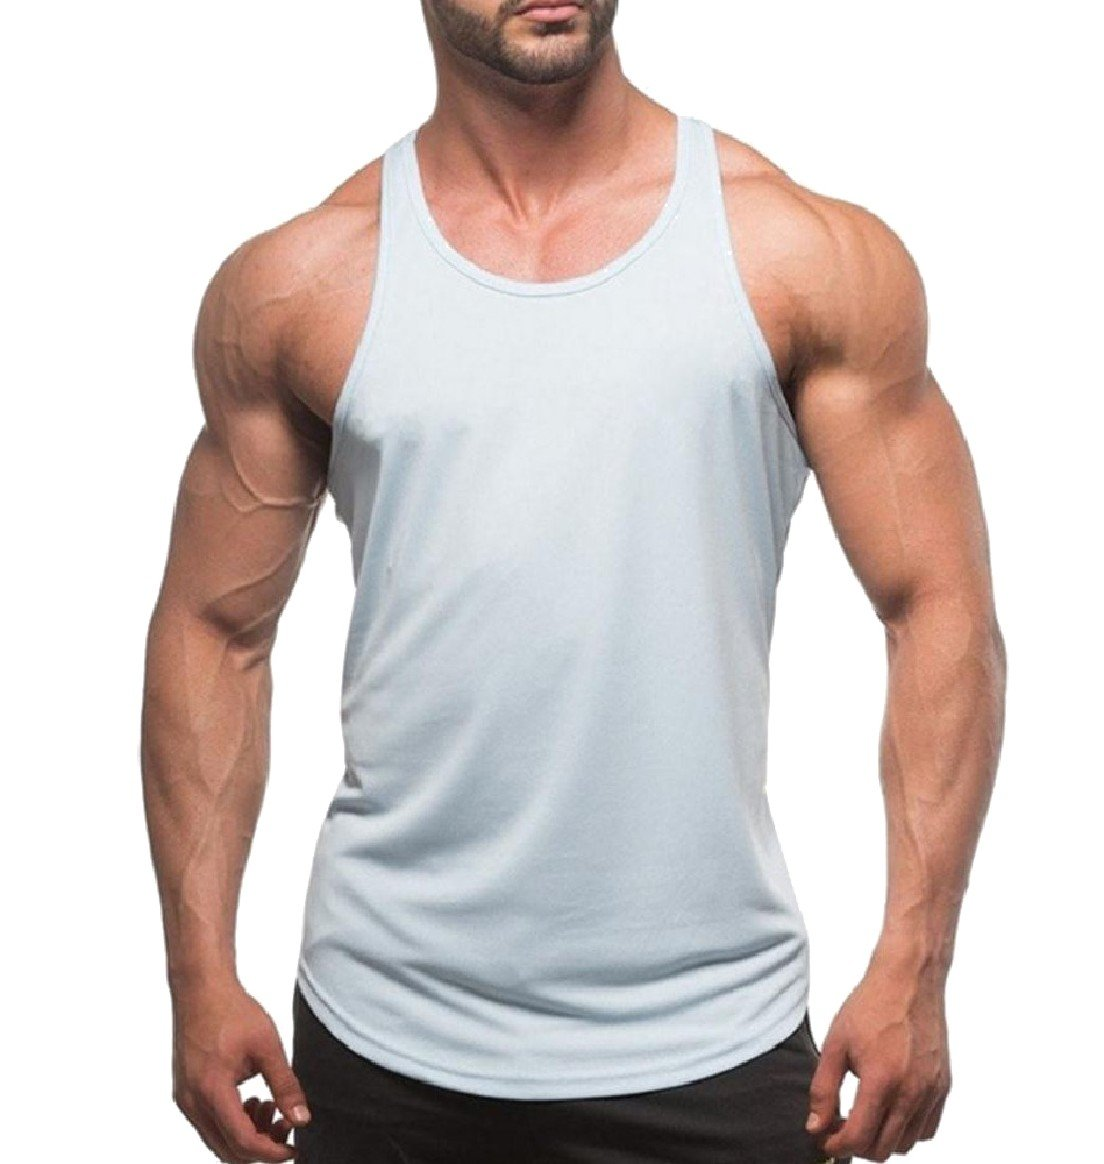 Abetteric Mens Solid Color Running Sleeveless Tanks Crewneck T Shirt White S